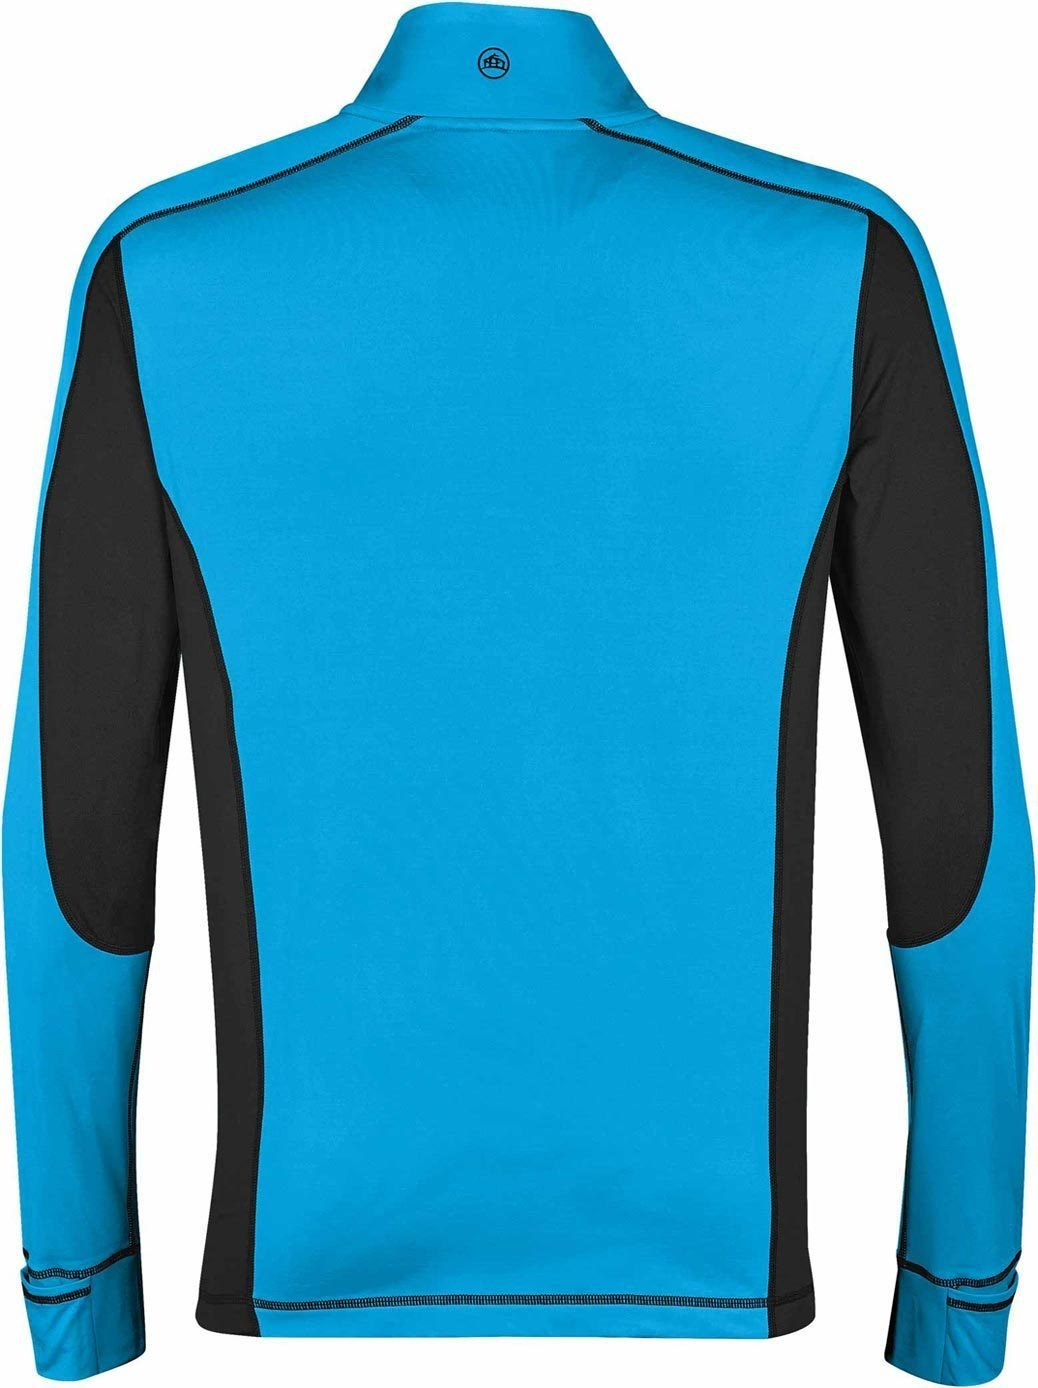 Electric Blue/Black - Back